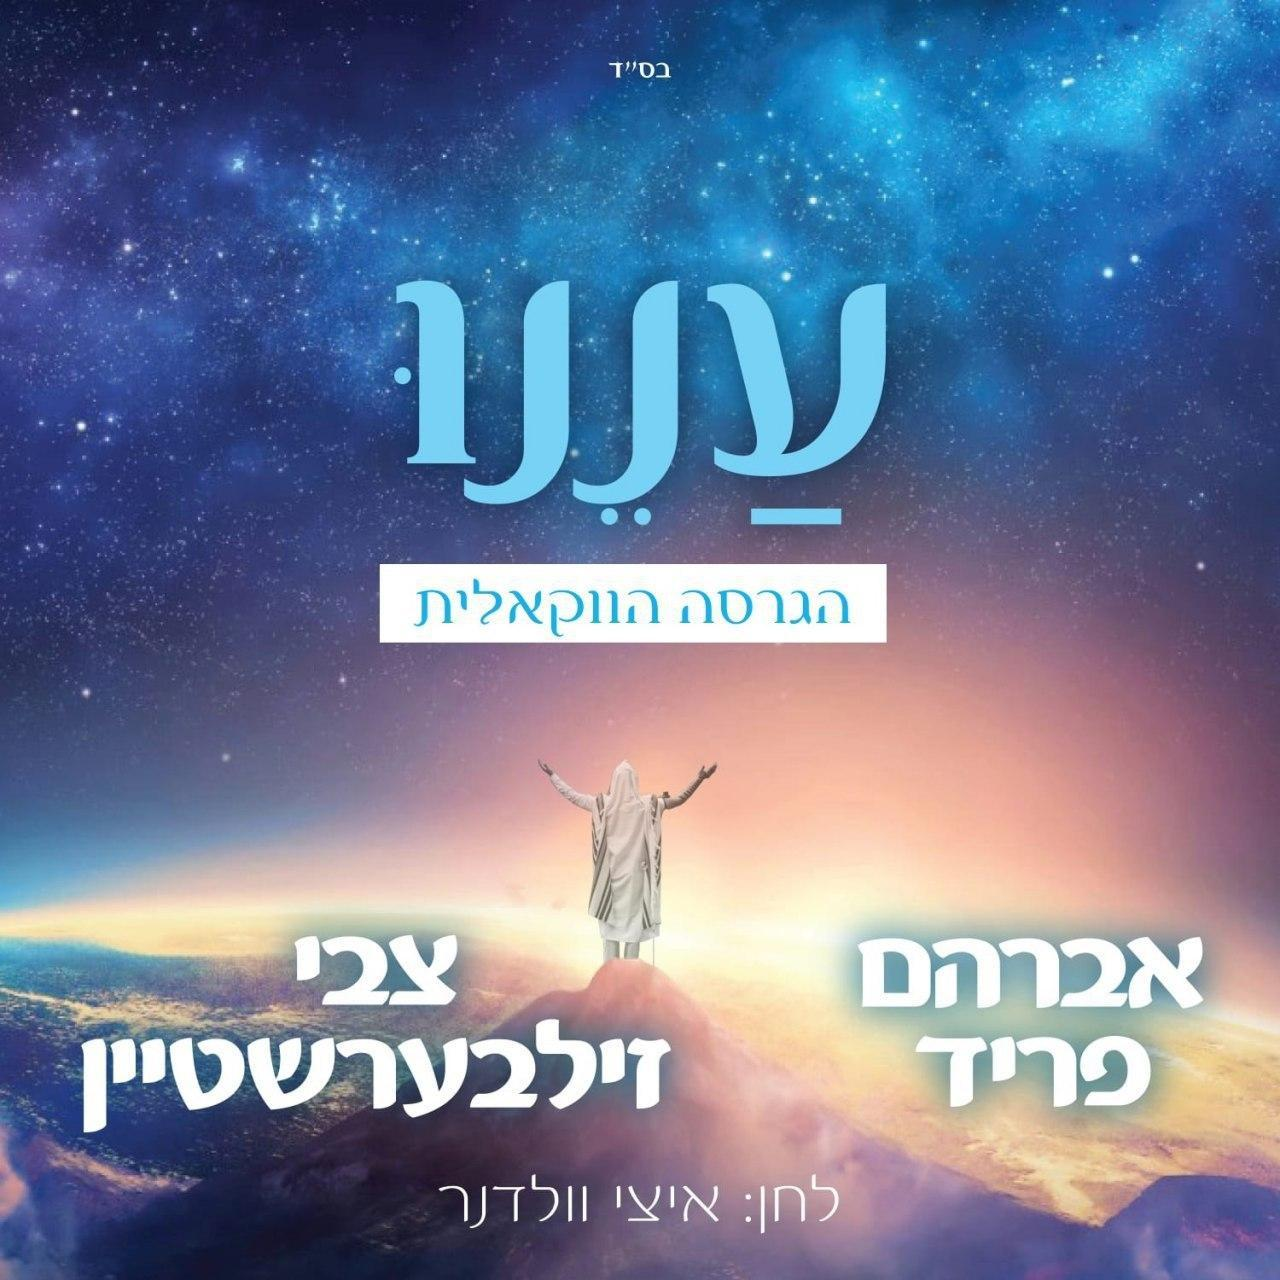 Avraham fried & Tzvi Silberstein - Aneinu (Acapella Single)